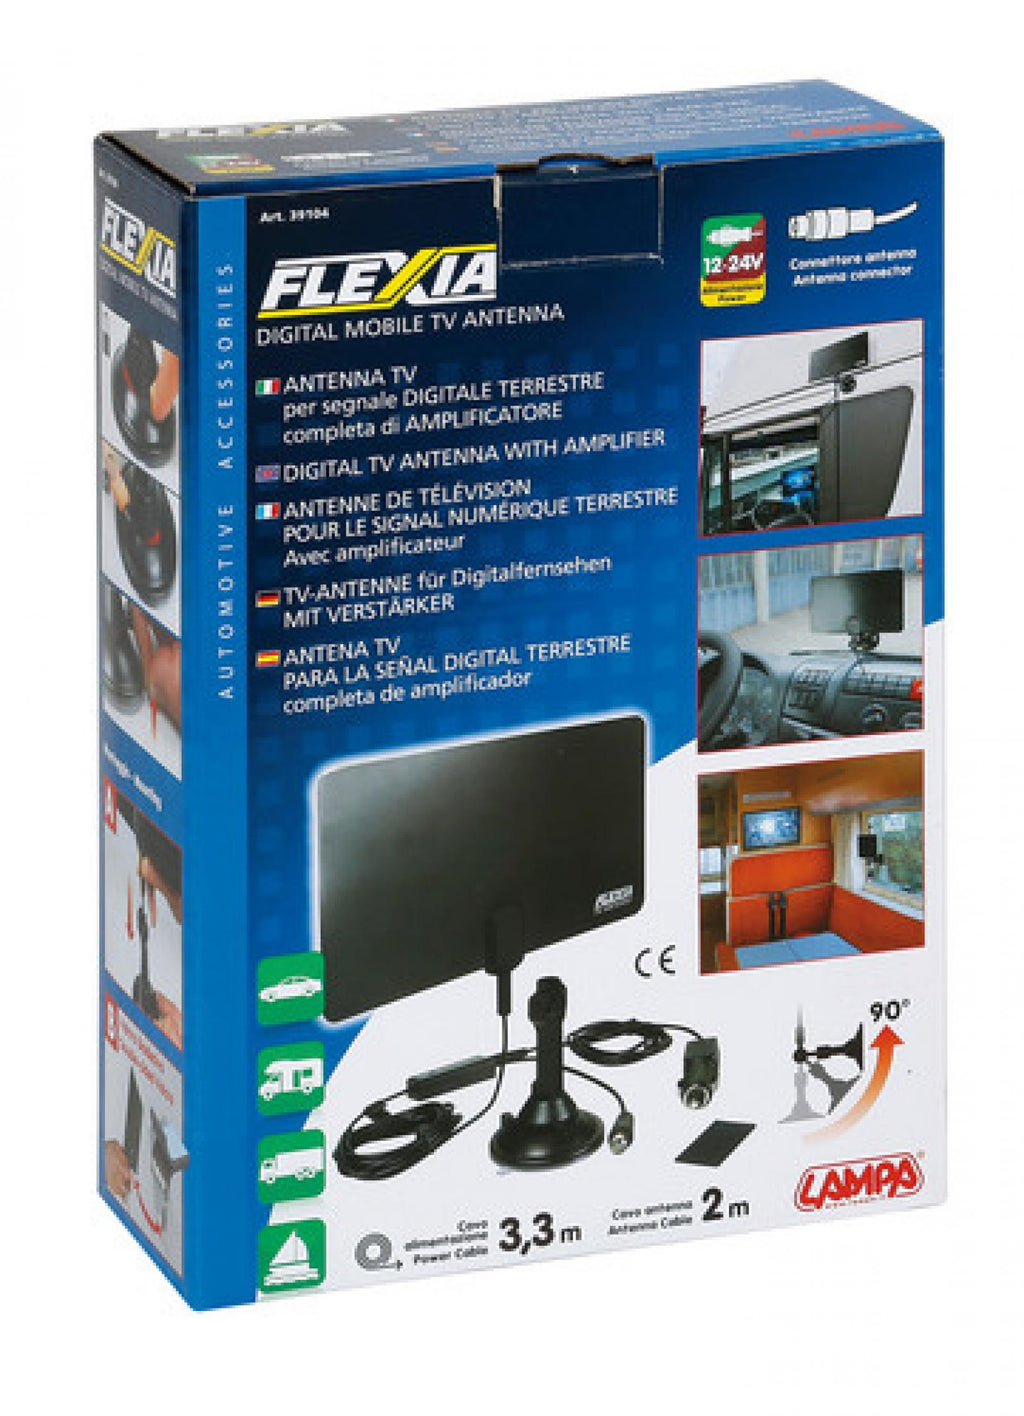 Flexia Digitale TV Antenne 12/24 V - truck-shopping.it